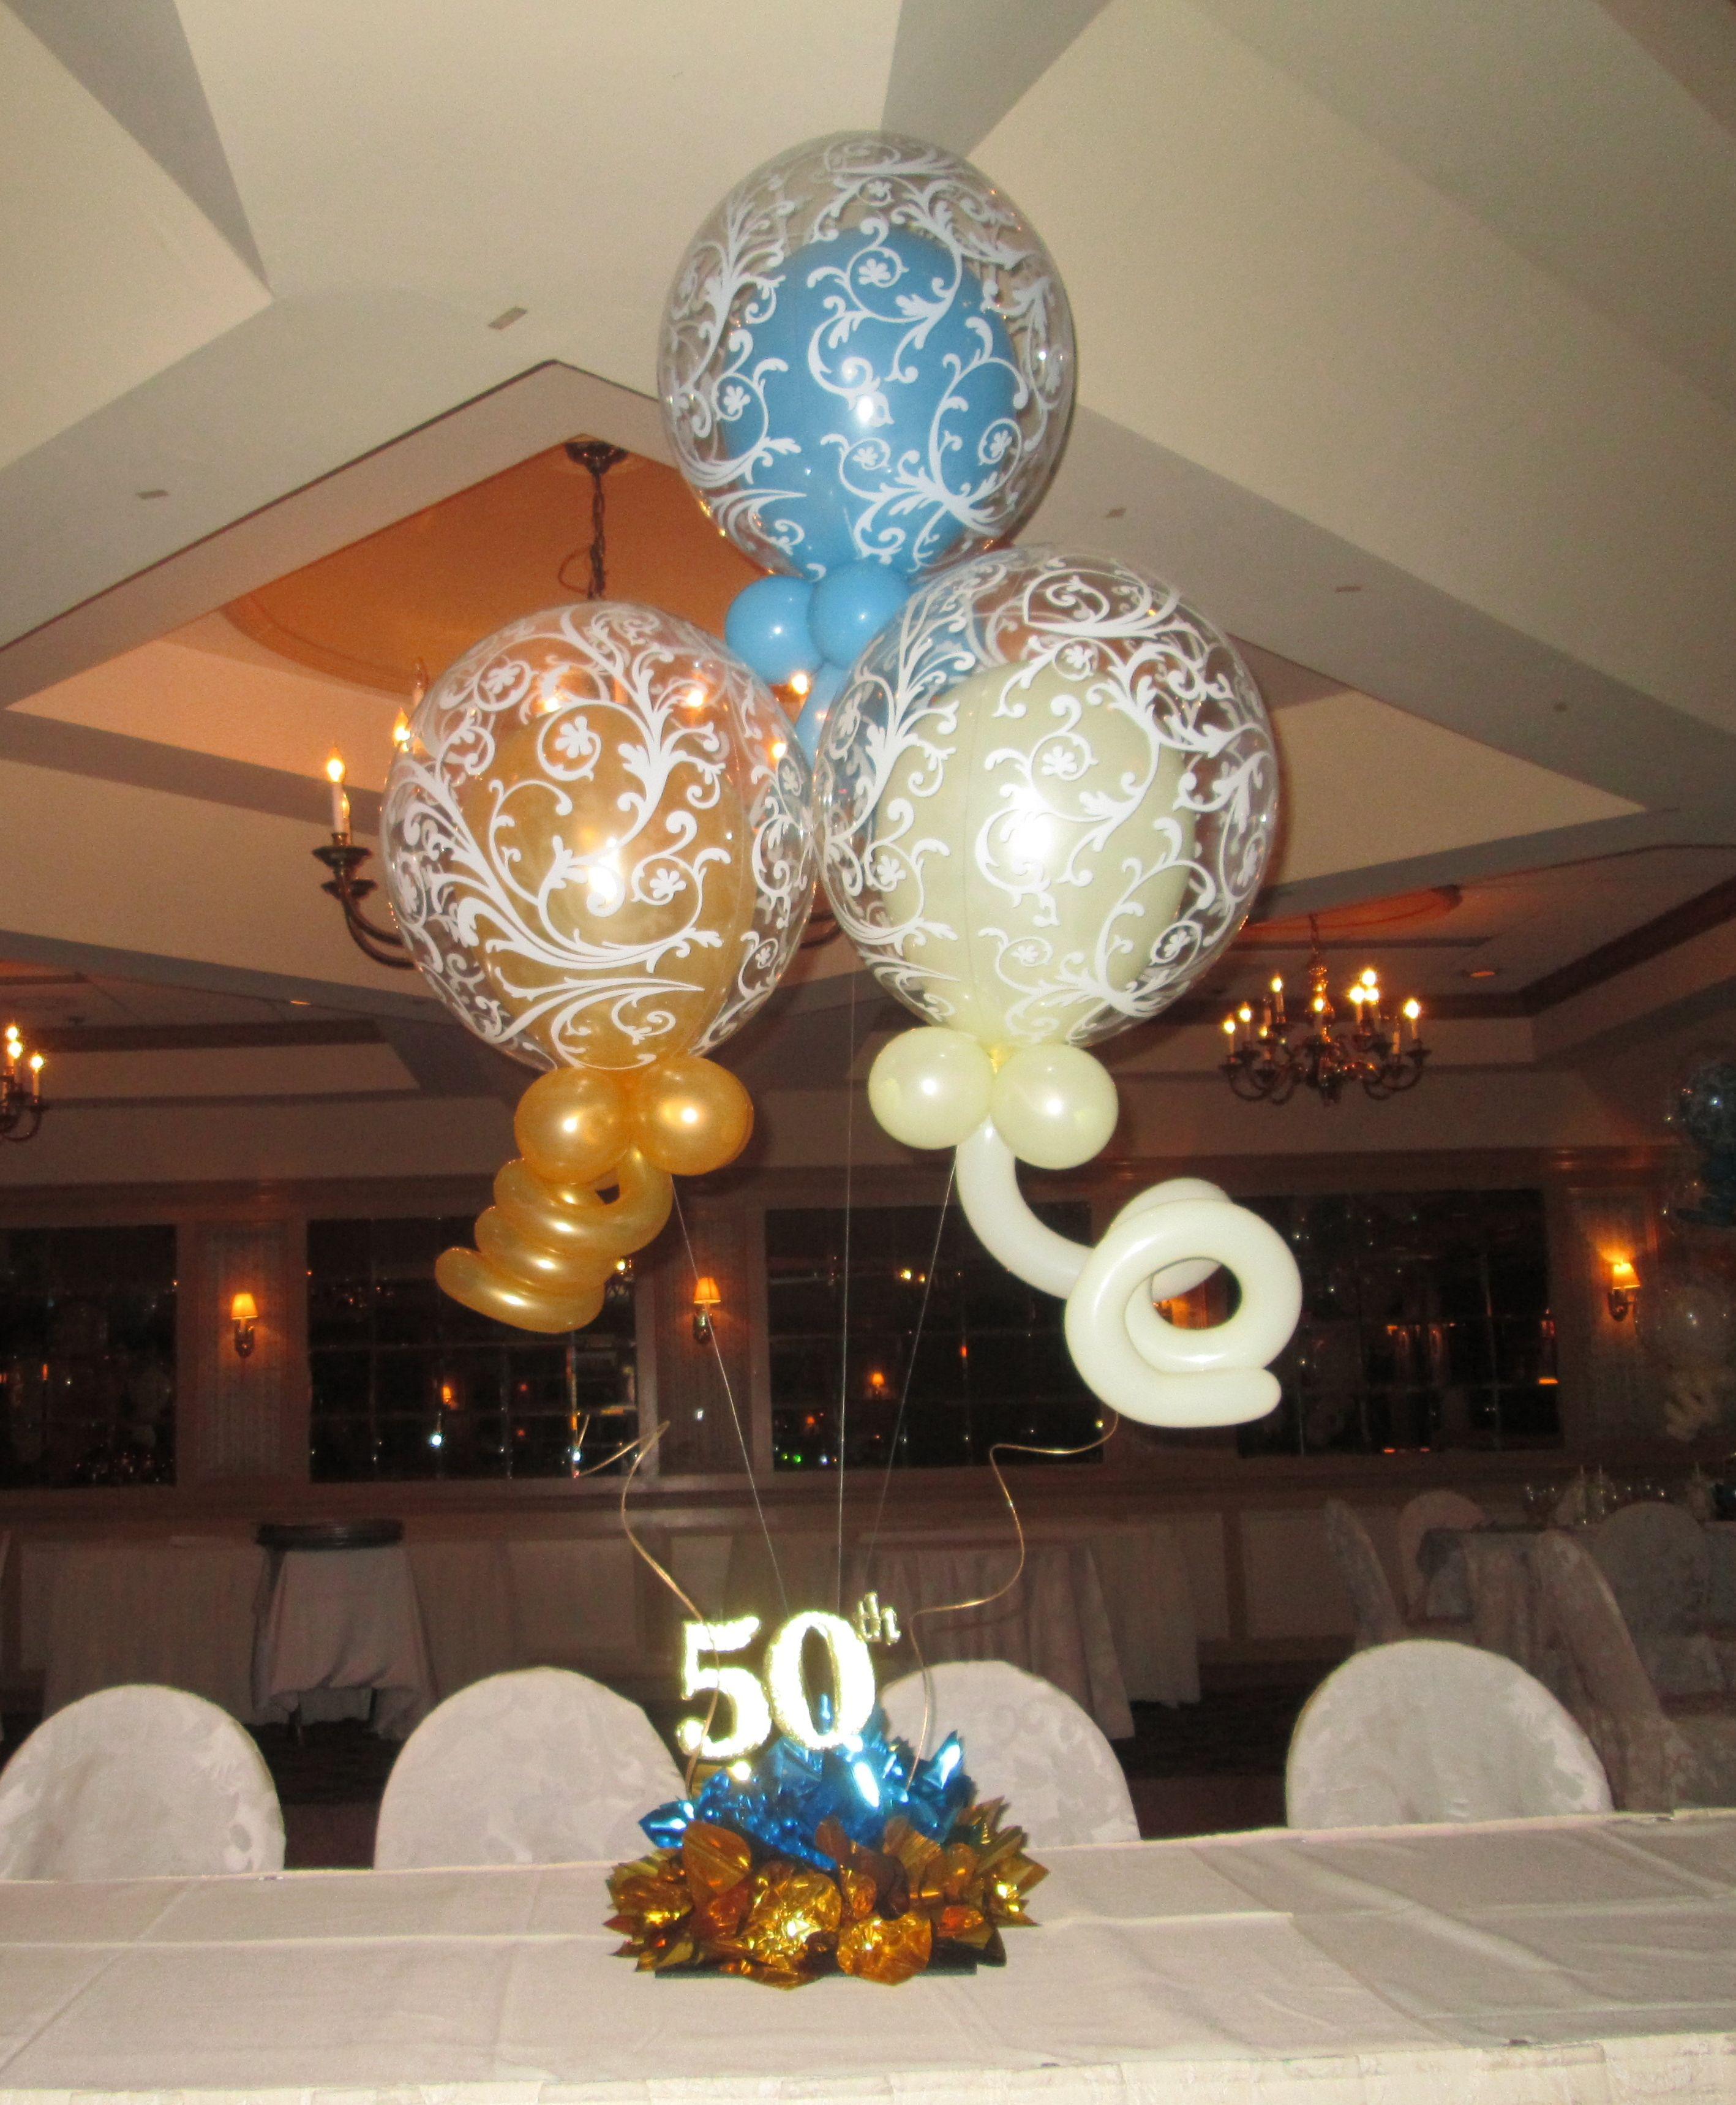 This centerpiece was made for a 50th wedding anniversary